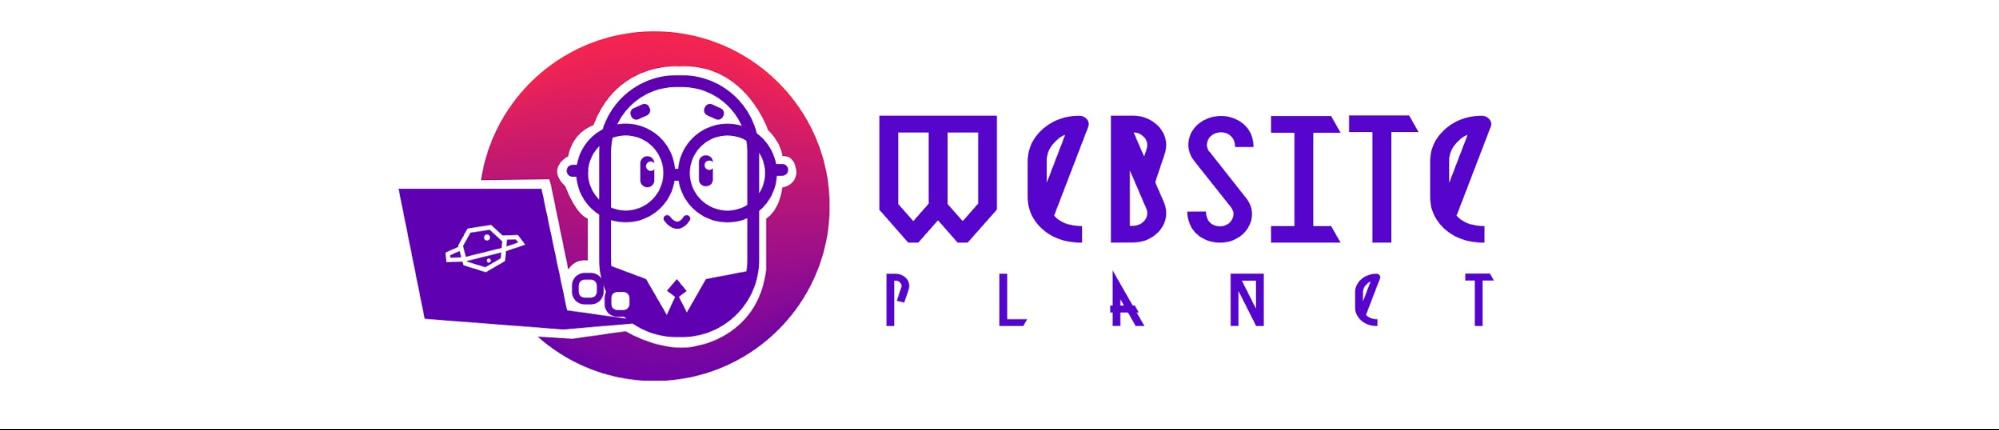 Website Planet logo from Fiverr - juancharles